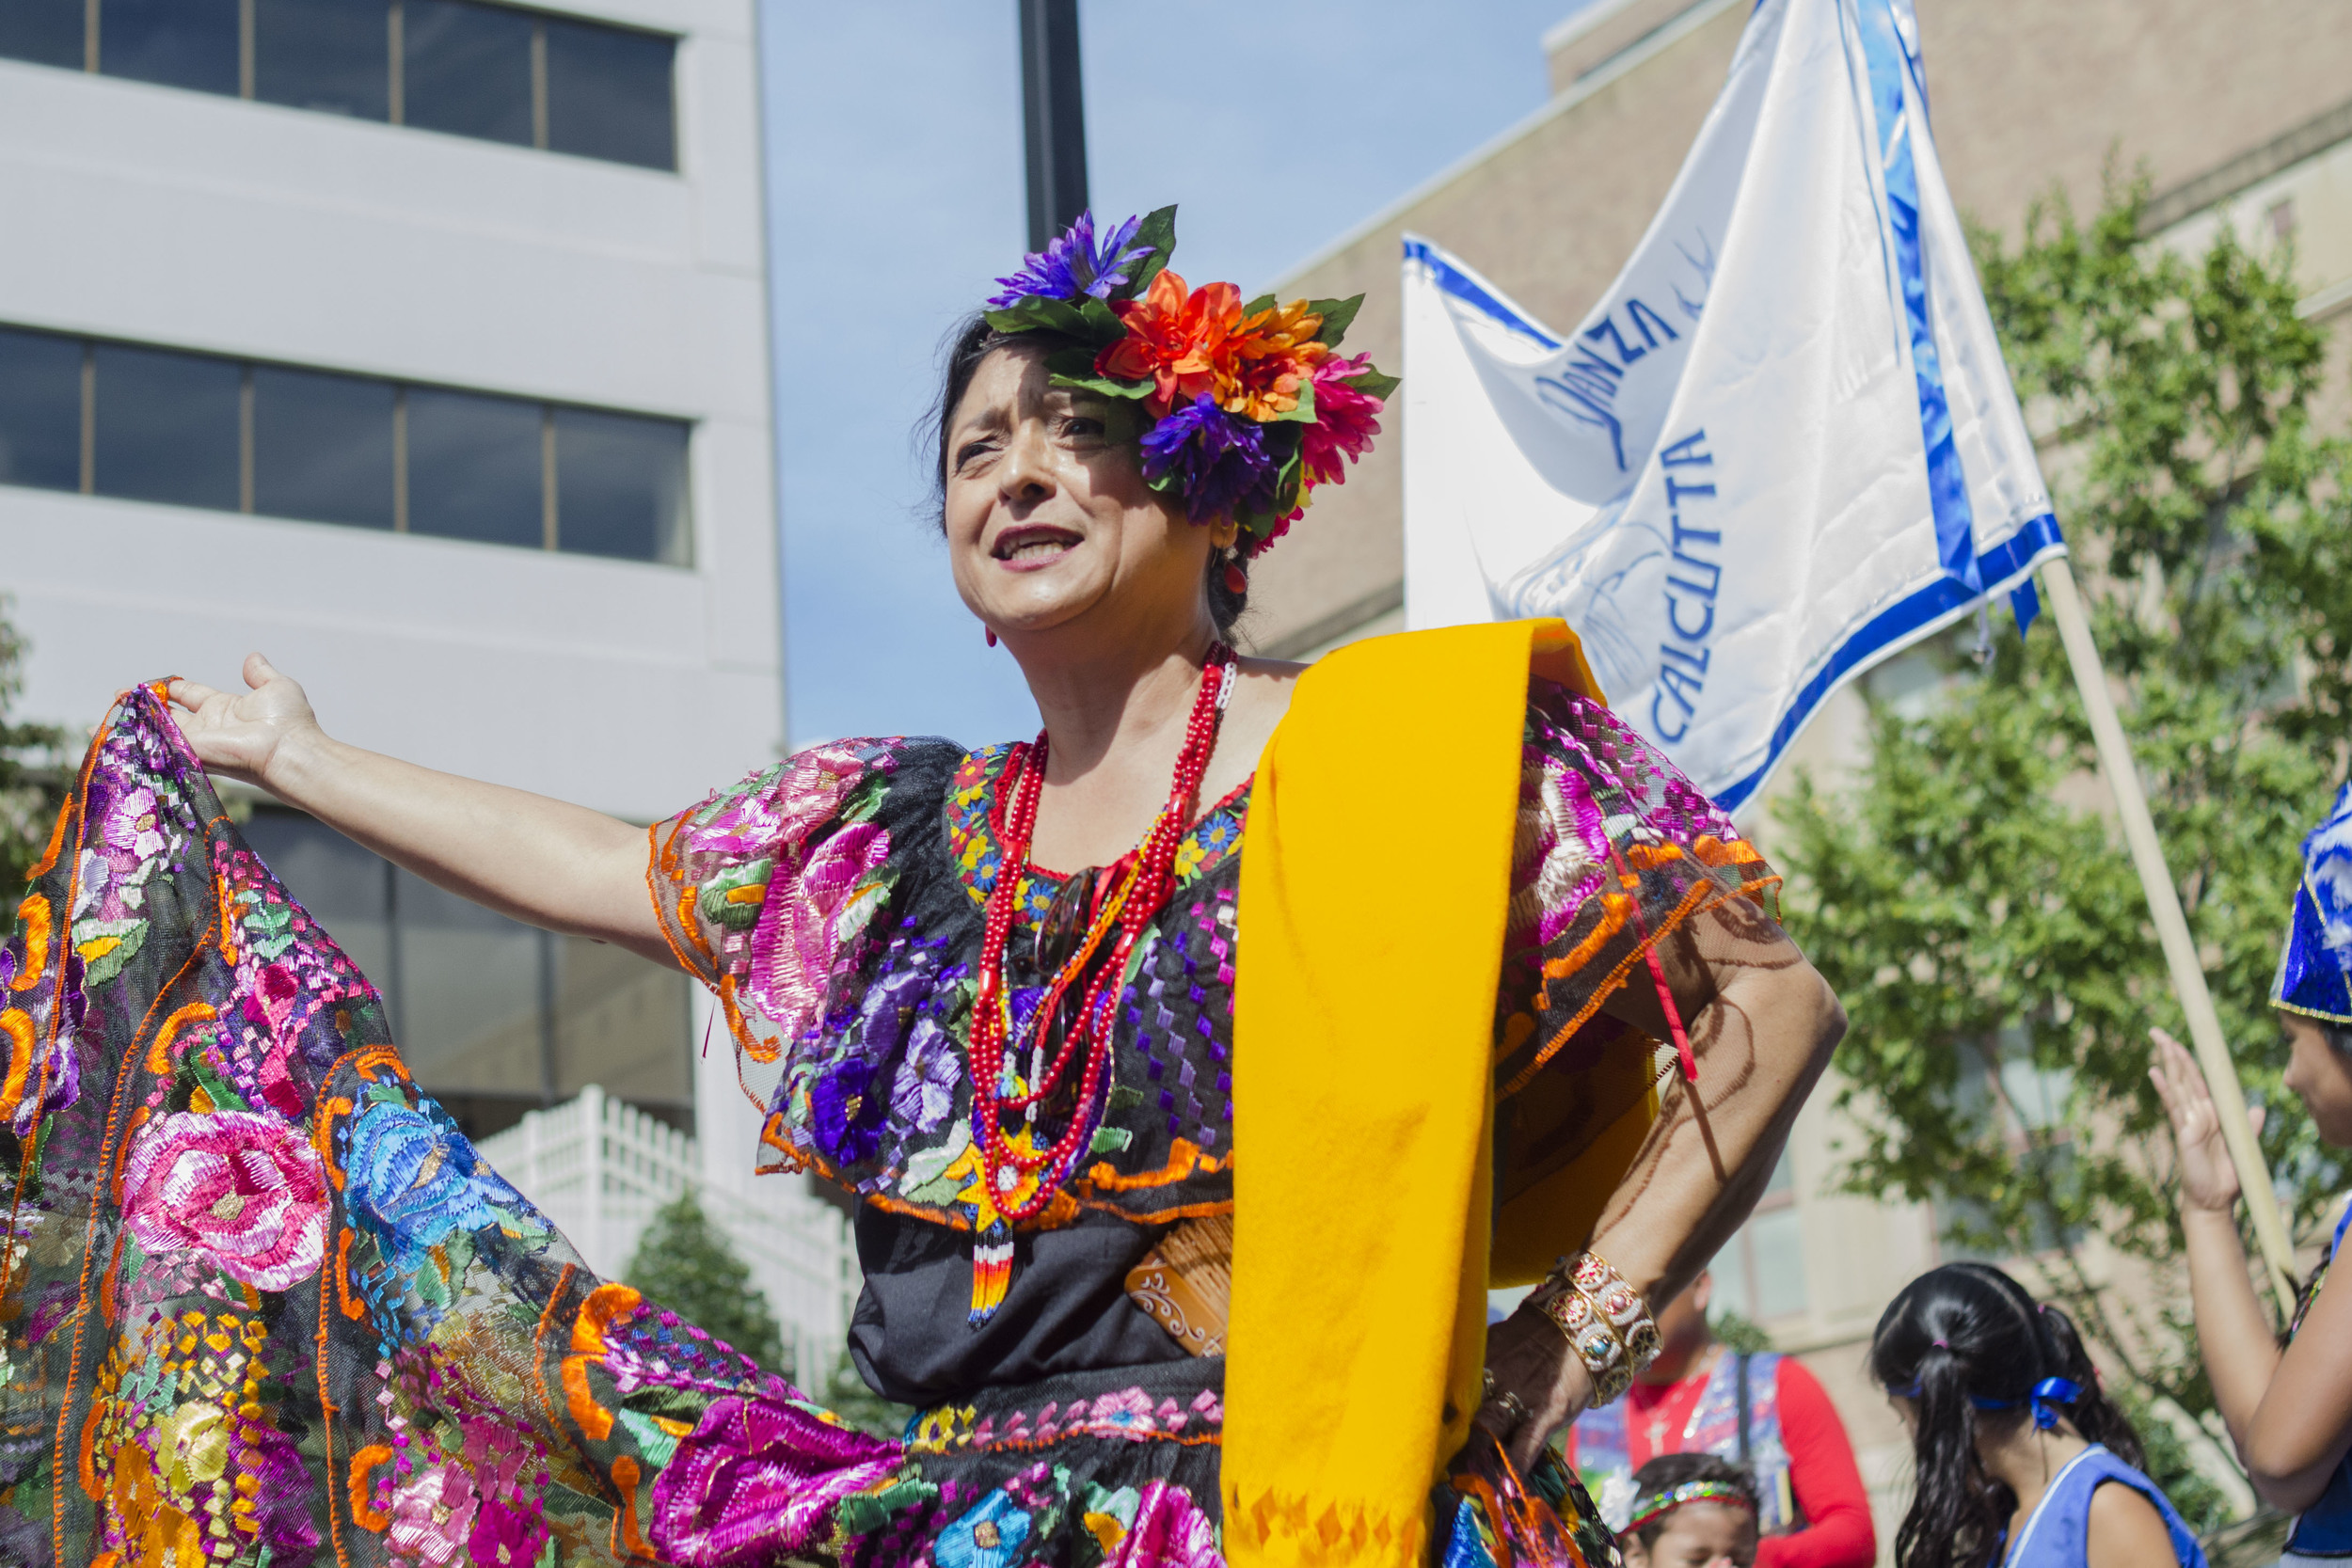 One main event is the Parade of Nations where representatives from each Latino country march down Gay Street and display their country's traditions and heritage. As the parade rounds Wall Avenue towards Market Square, Gabriella Tomás sings a Chilean pride song.